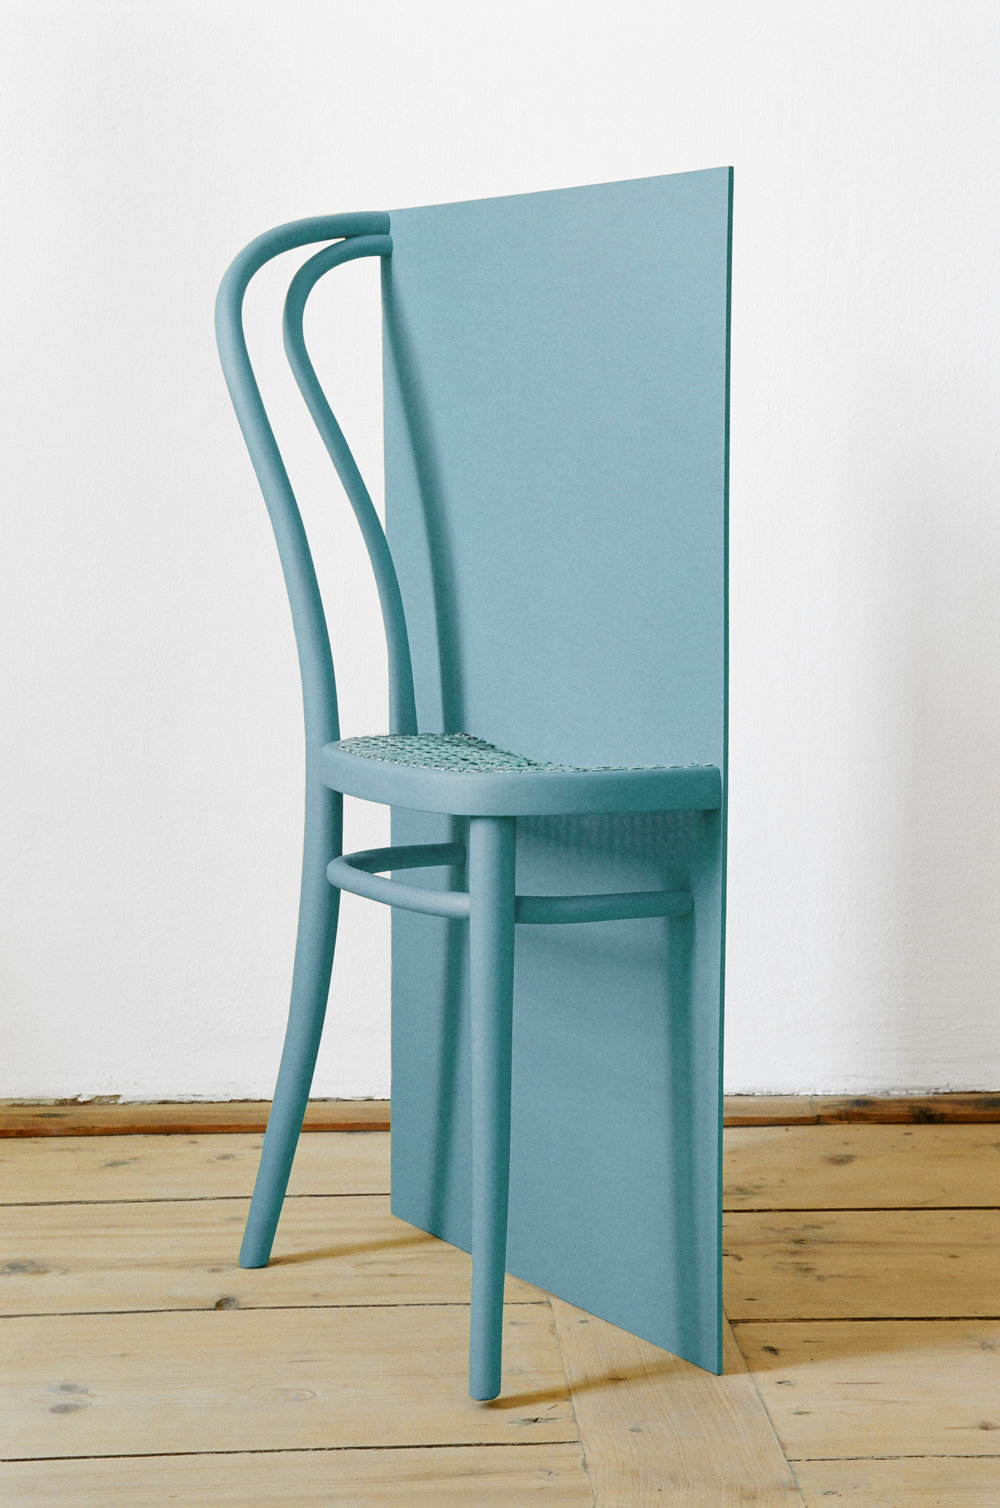 ROMAN PFEFFER  GETEILTES VOLUMEN, 2018 (l x b x h = V [Sessel]:2), Half a Thonet chair, wood, paint / Thonet-Sessel, Holzplatte, Farbe, 90 x 53,7 x 20,5 cm. The volume of the wooden board corresponds to that of half the Thonet chair / Das Volumen der Holzplatte entspricht dem Volumen des halben Thonet-Sessels Courtesy Galerie Raum mit Licht,  Photo: Roman Pfeffer